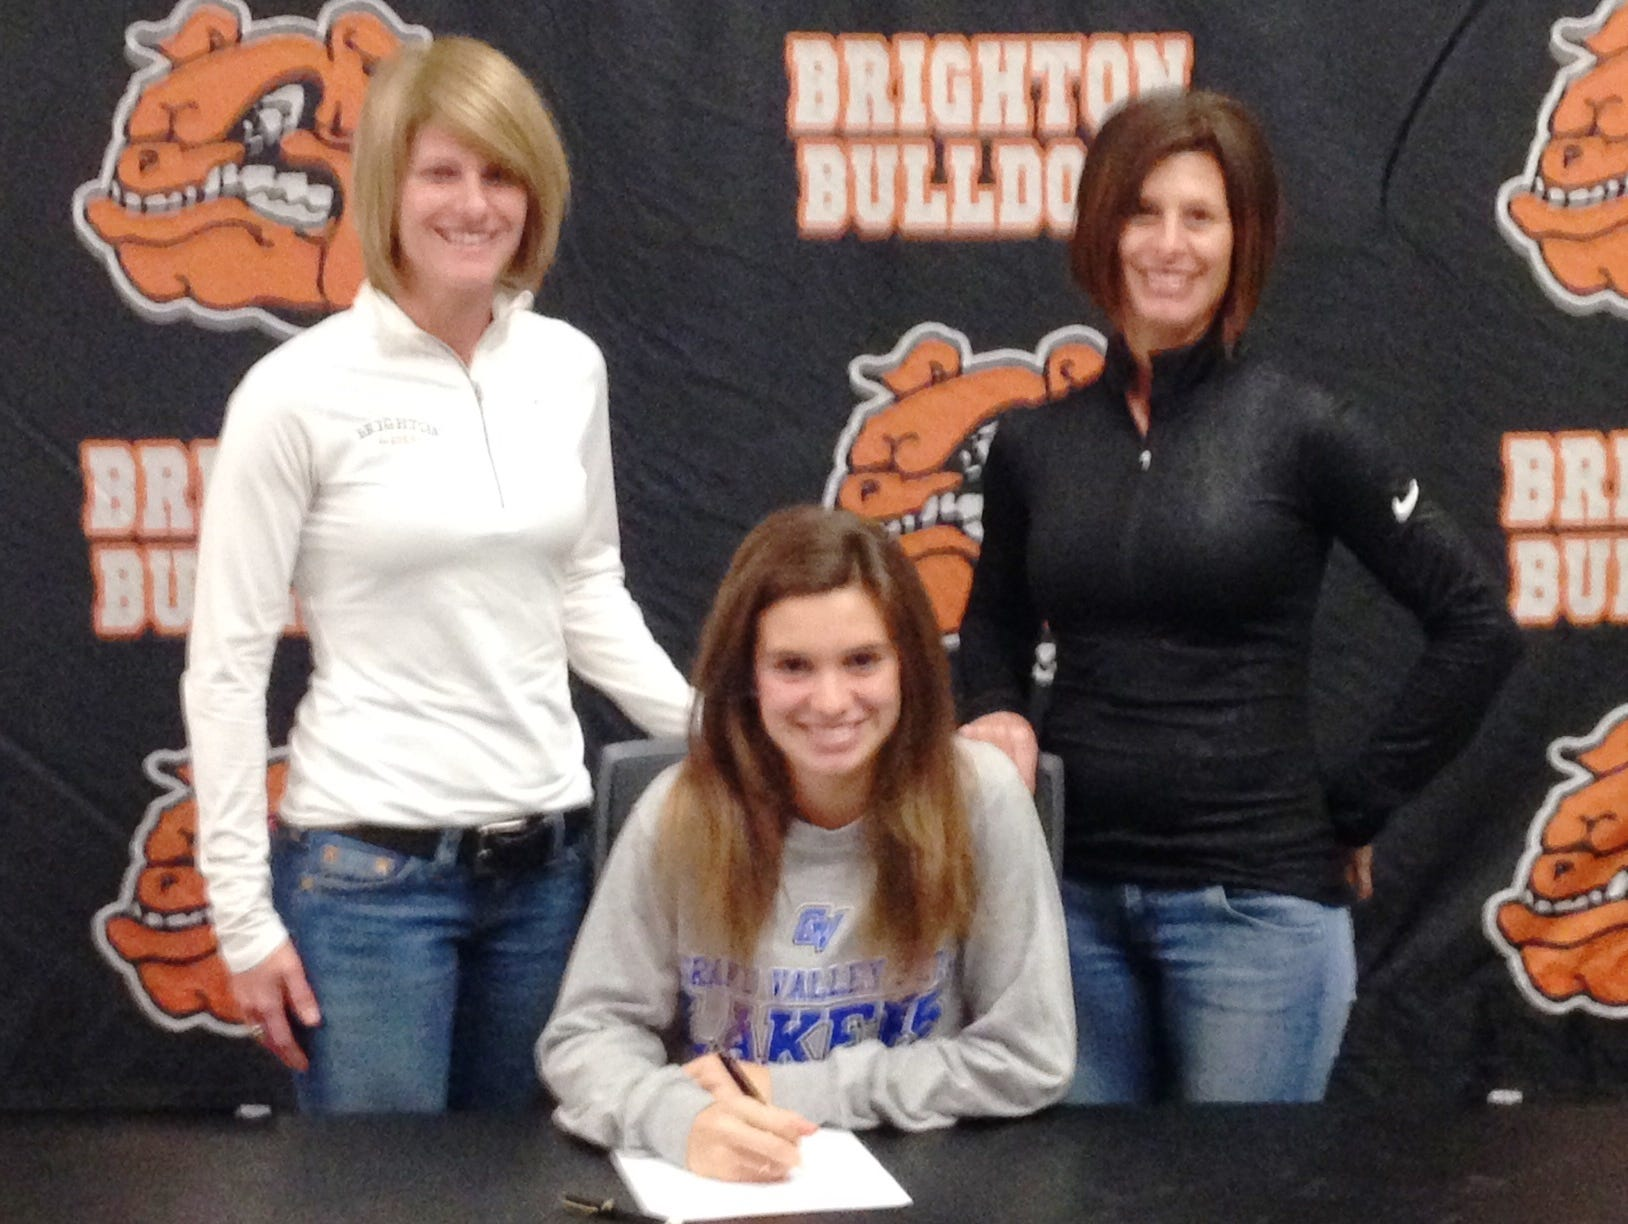 Brighton's Jenna Sica signed with Grand Valley State University on Wednesday alongside her cross country coach Kristi Matuszewski, left, and her mom Shelly, right.